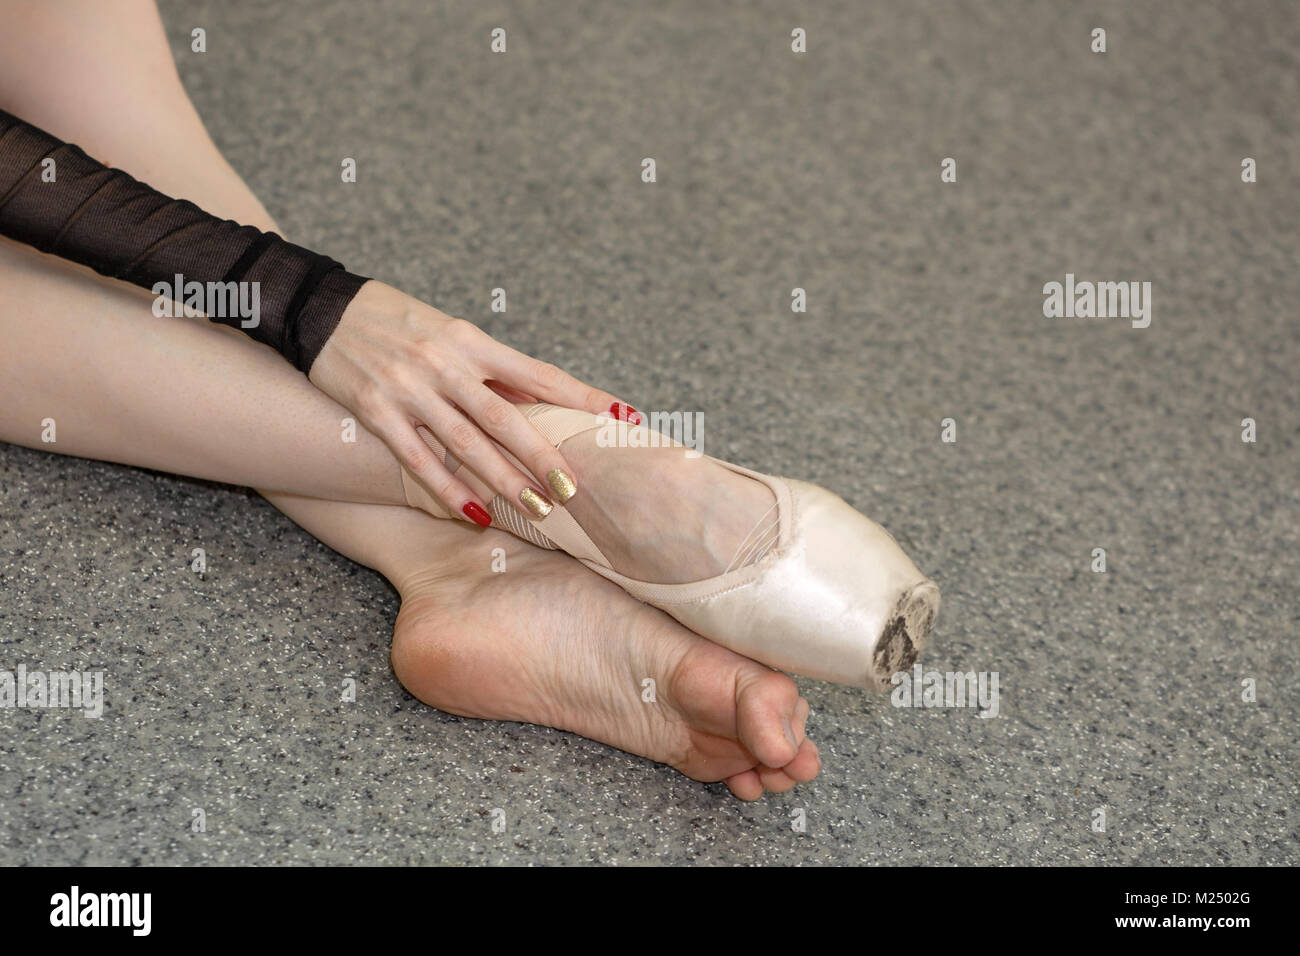 The ballerina wore a pointe with one foot. Slender long female legs. Shooting close-ups - Stock Image